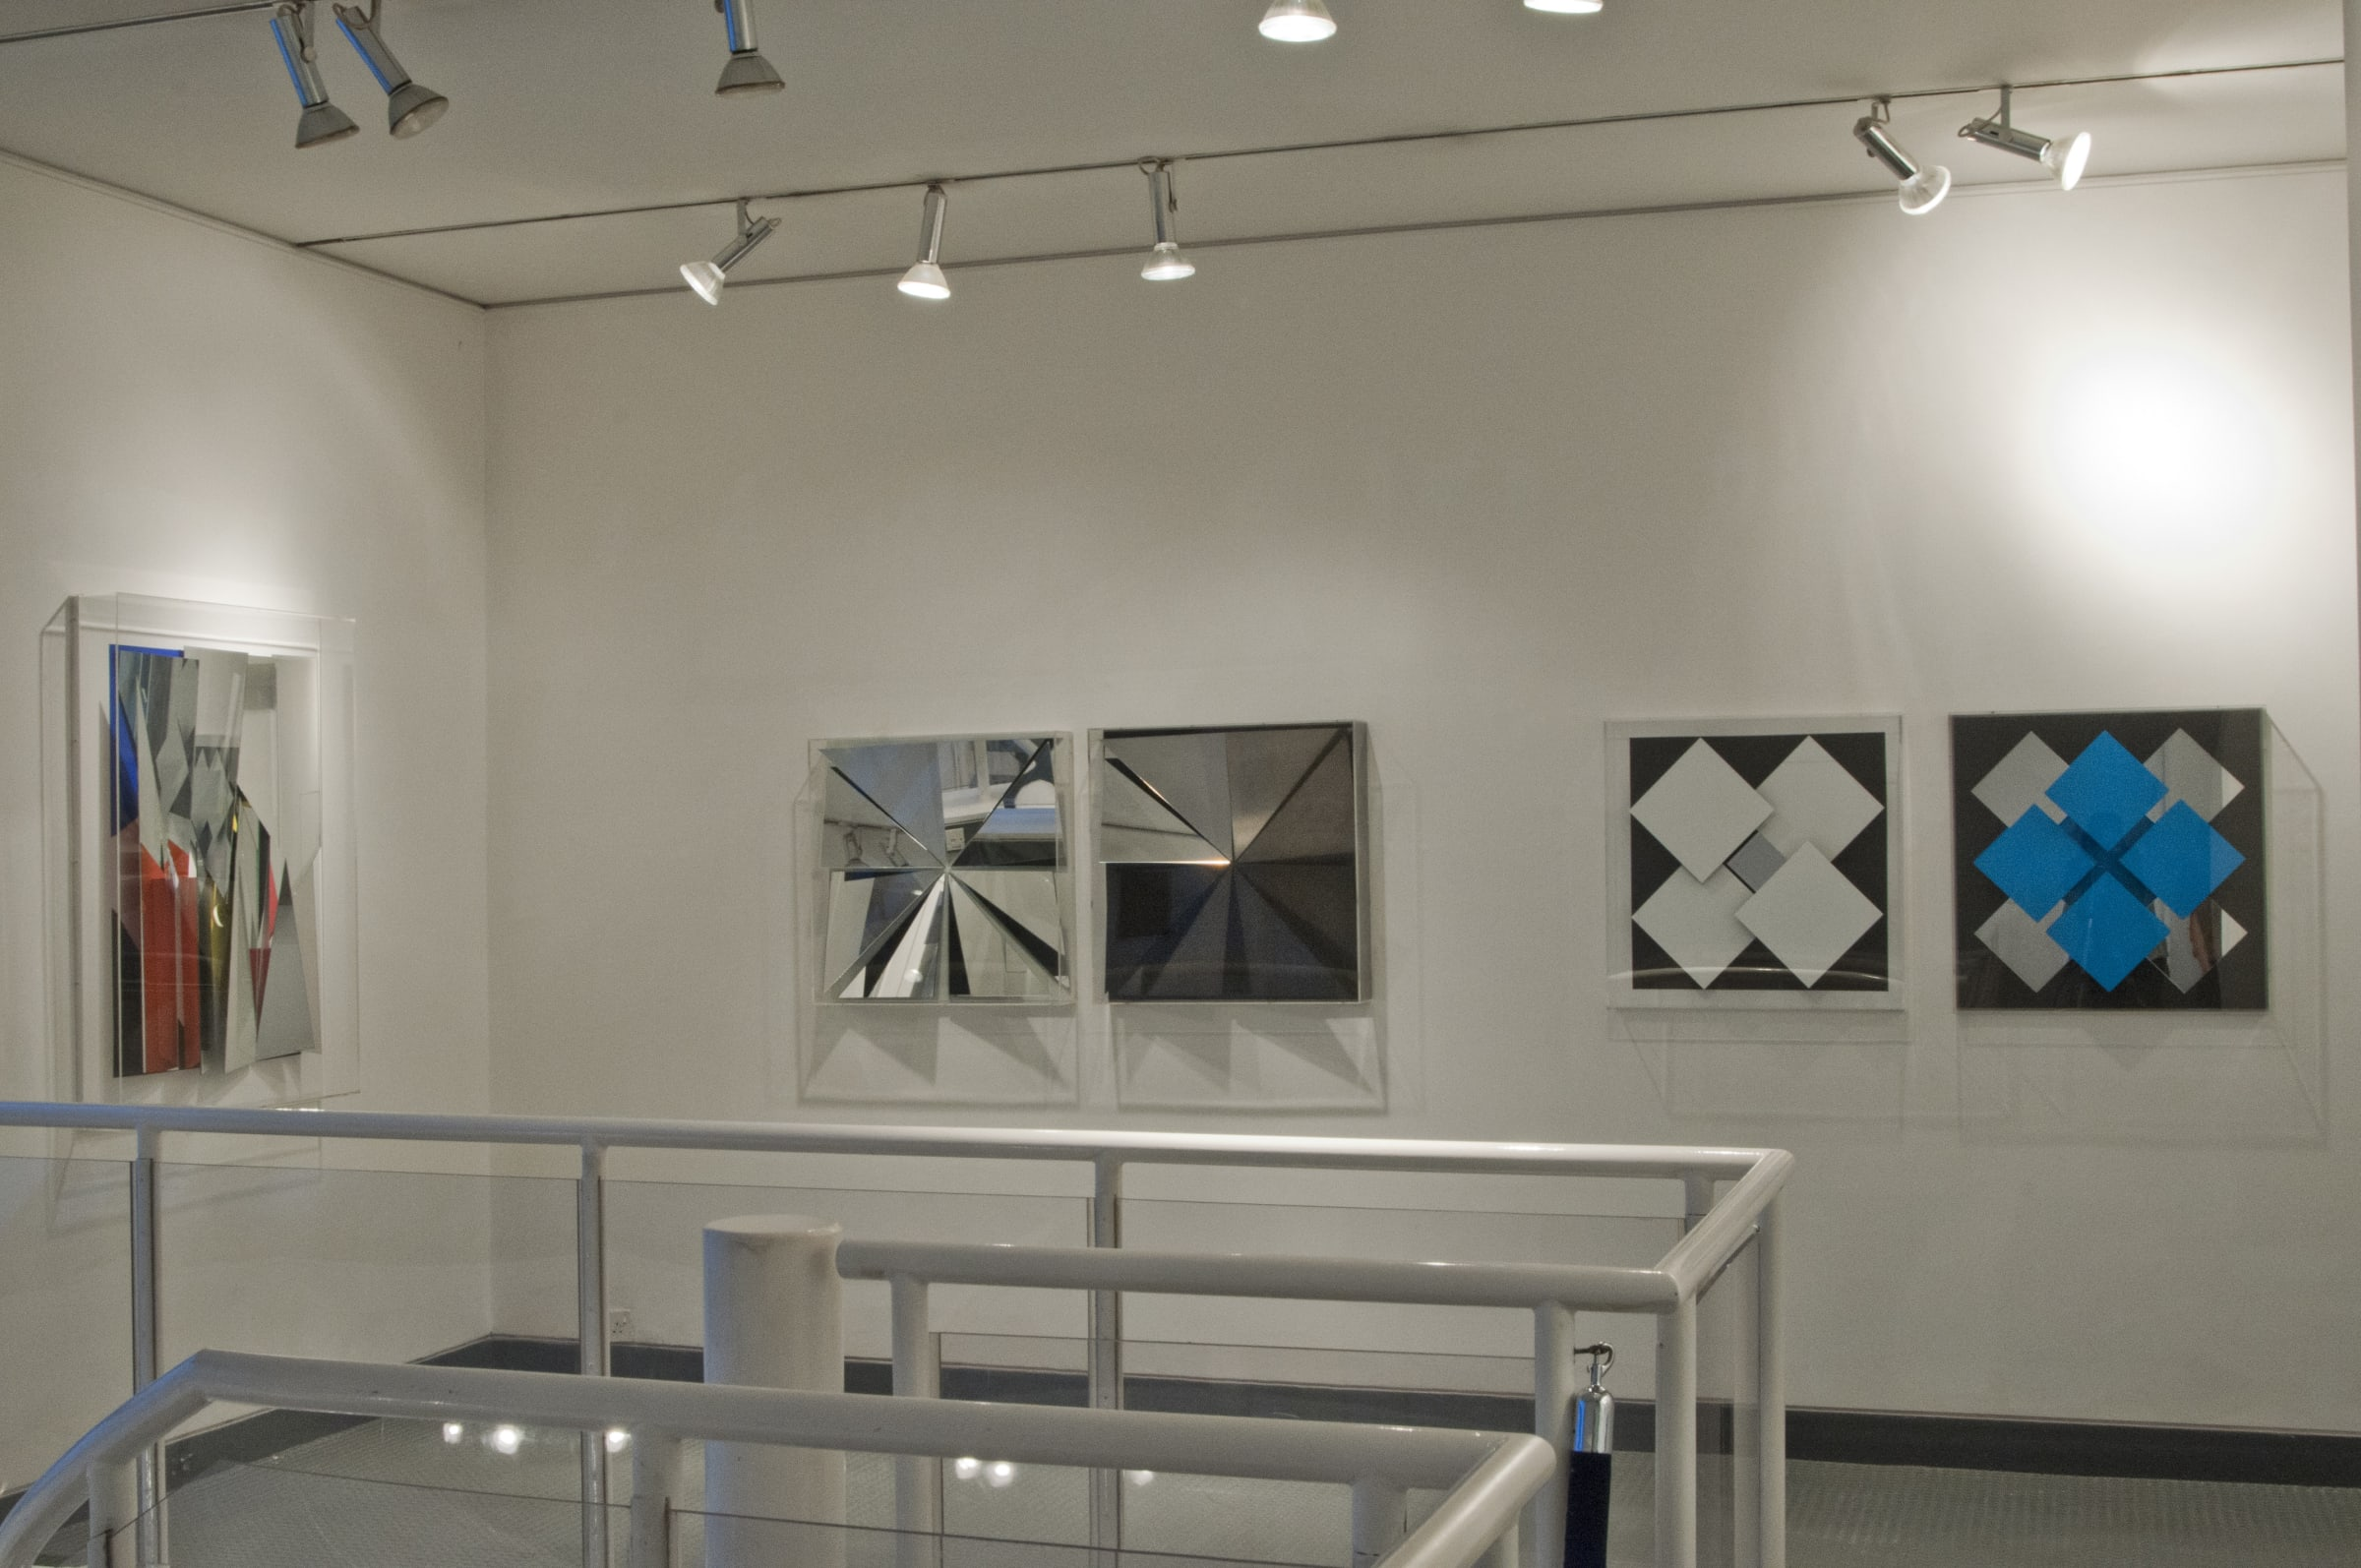 """<span class=""""link fancybox-details-link""""><a href=""""/exhibitions/75/works/image_standalone229/"""">View Detail Page</a></span><p>CHRISTIAN MEGERT   A NEW SPACE   11 JAN - 24 FEB 2012  Installation View</p>"""